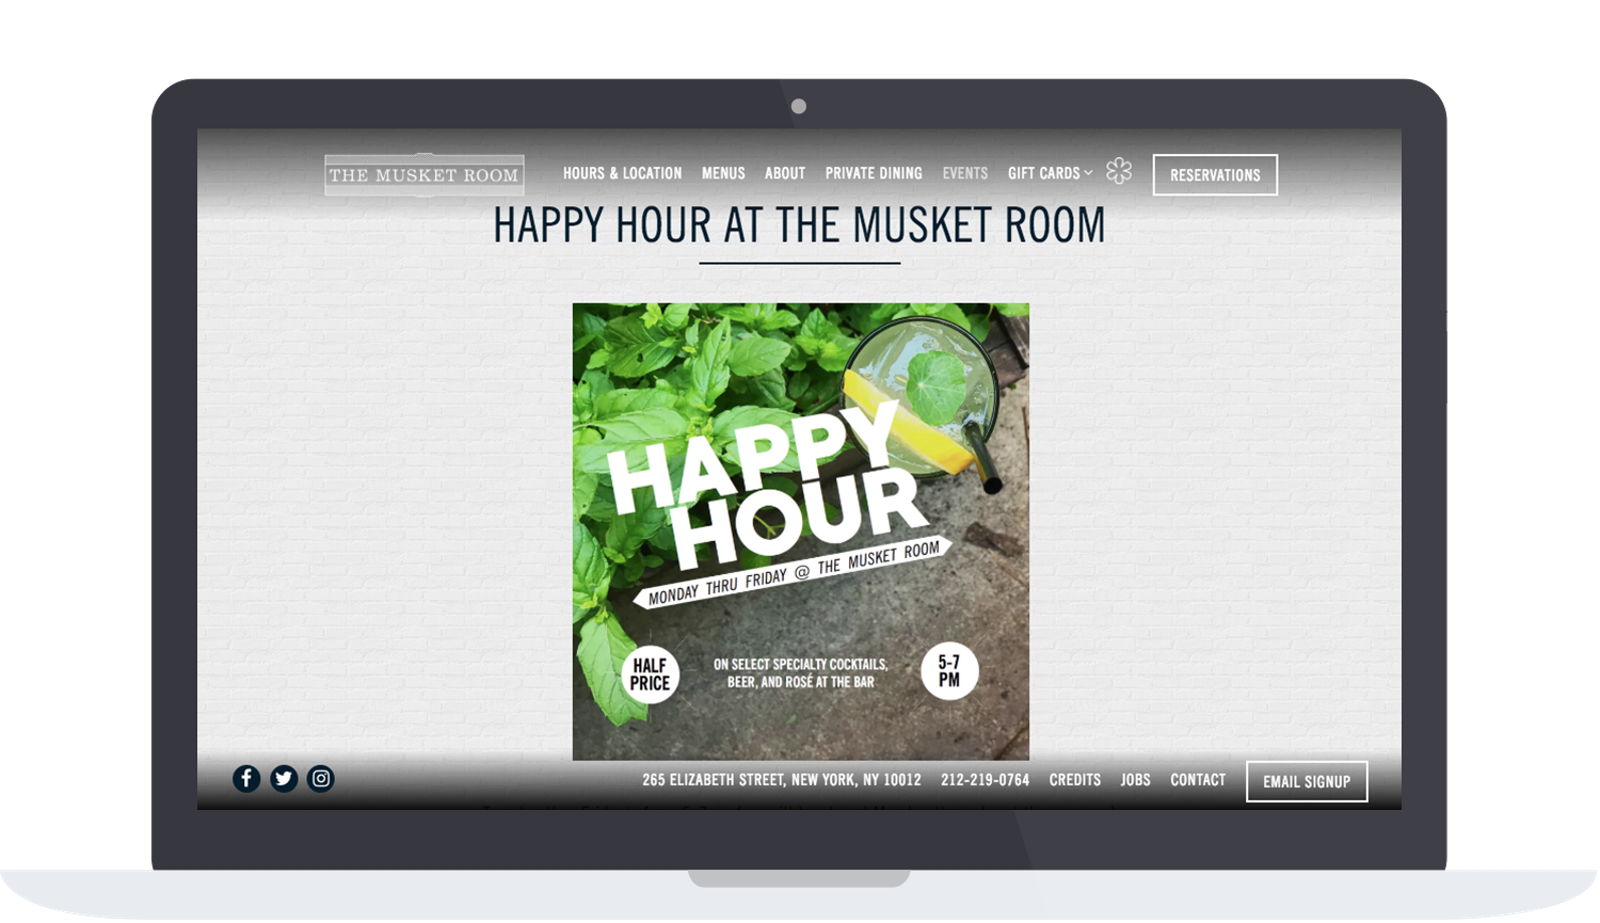 The Musket Room's website event page